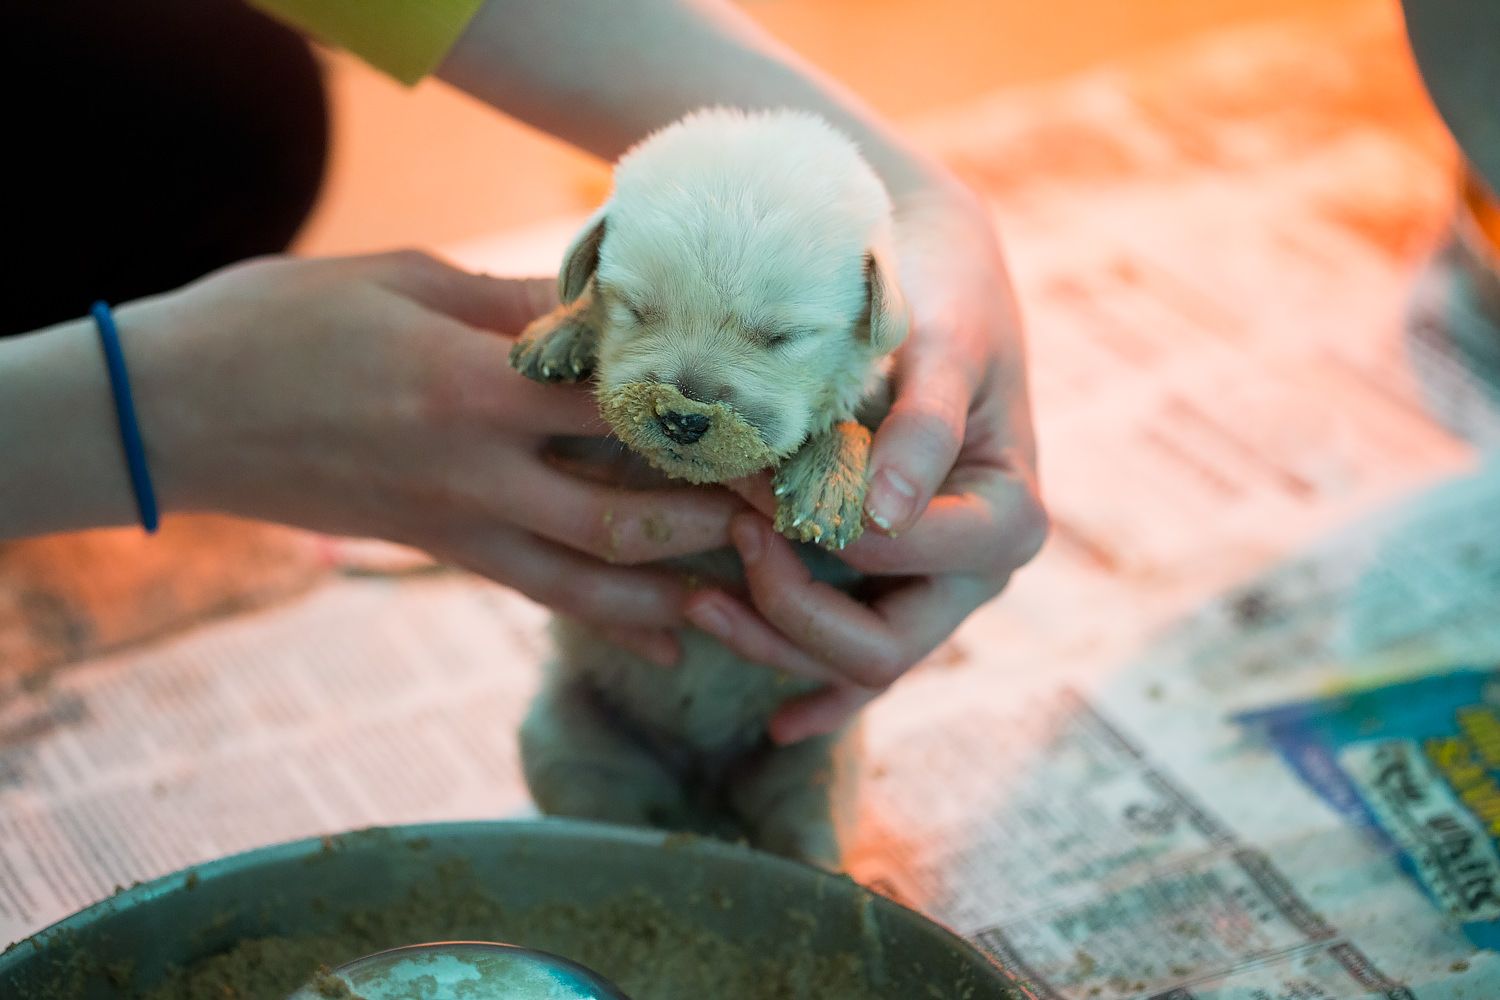 Guiding Eyes pup with a messy snout after their first solid meal.